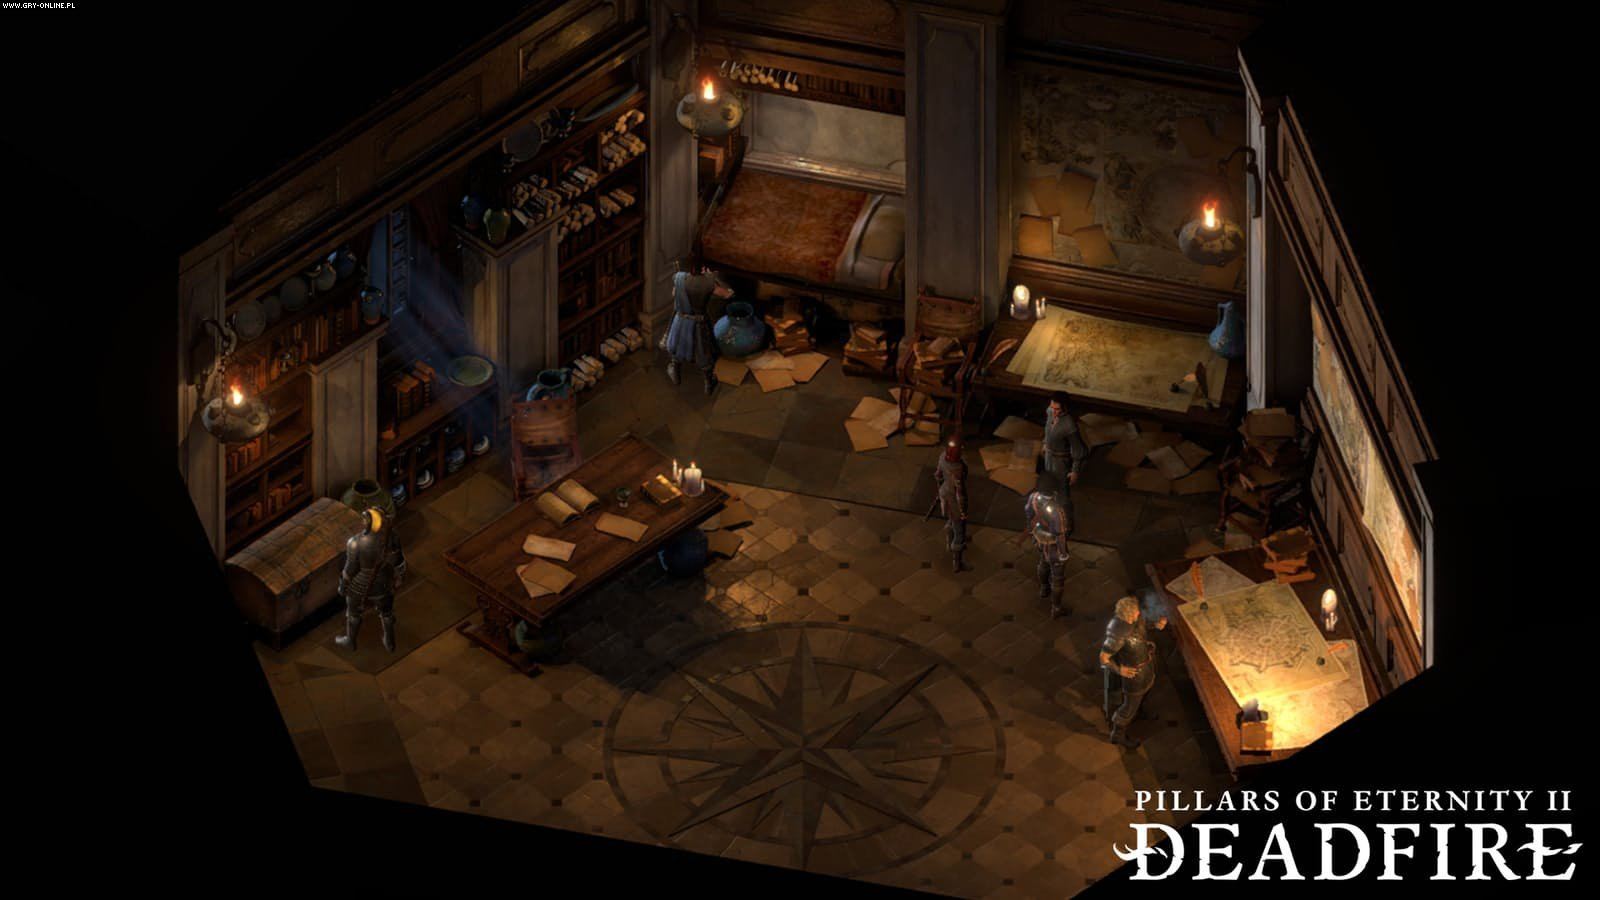 Pillars of Eternity II: Deadfire PC, PS4, XONE, Switch Games Image 22/27, Obsidian Entertainment, Versus Evil